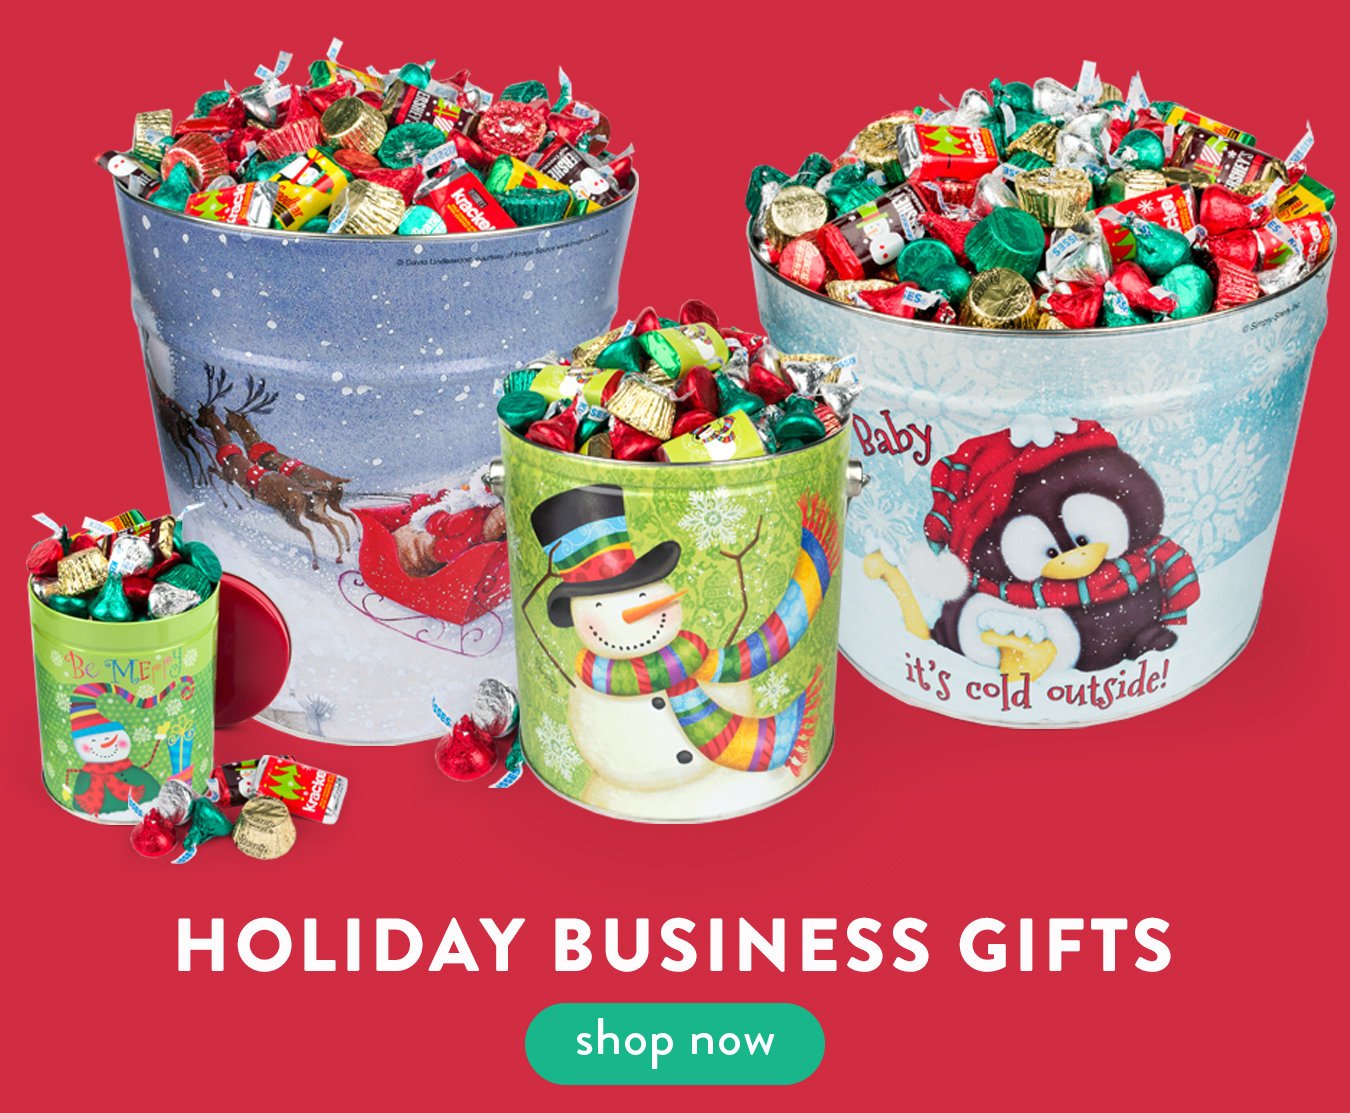 Holiday Business Gifts